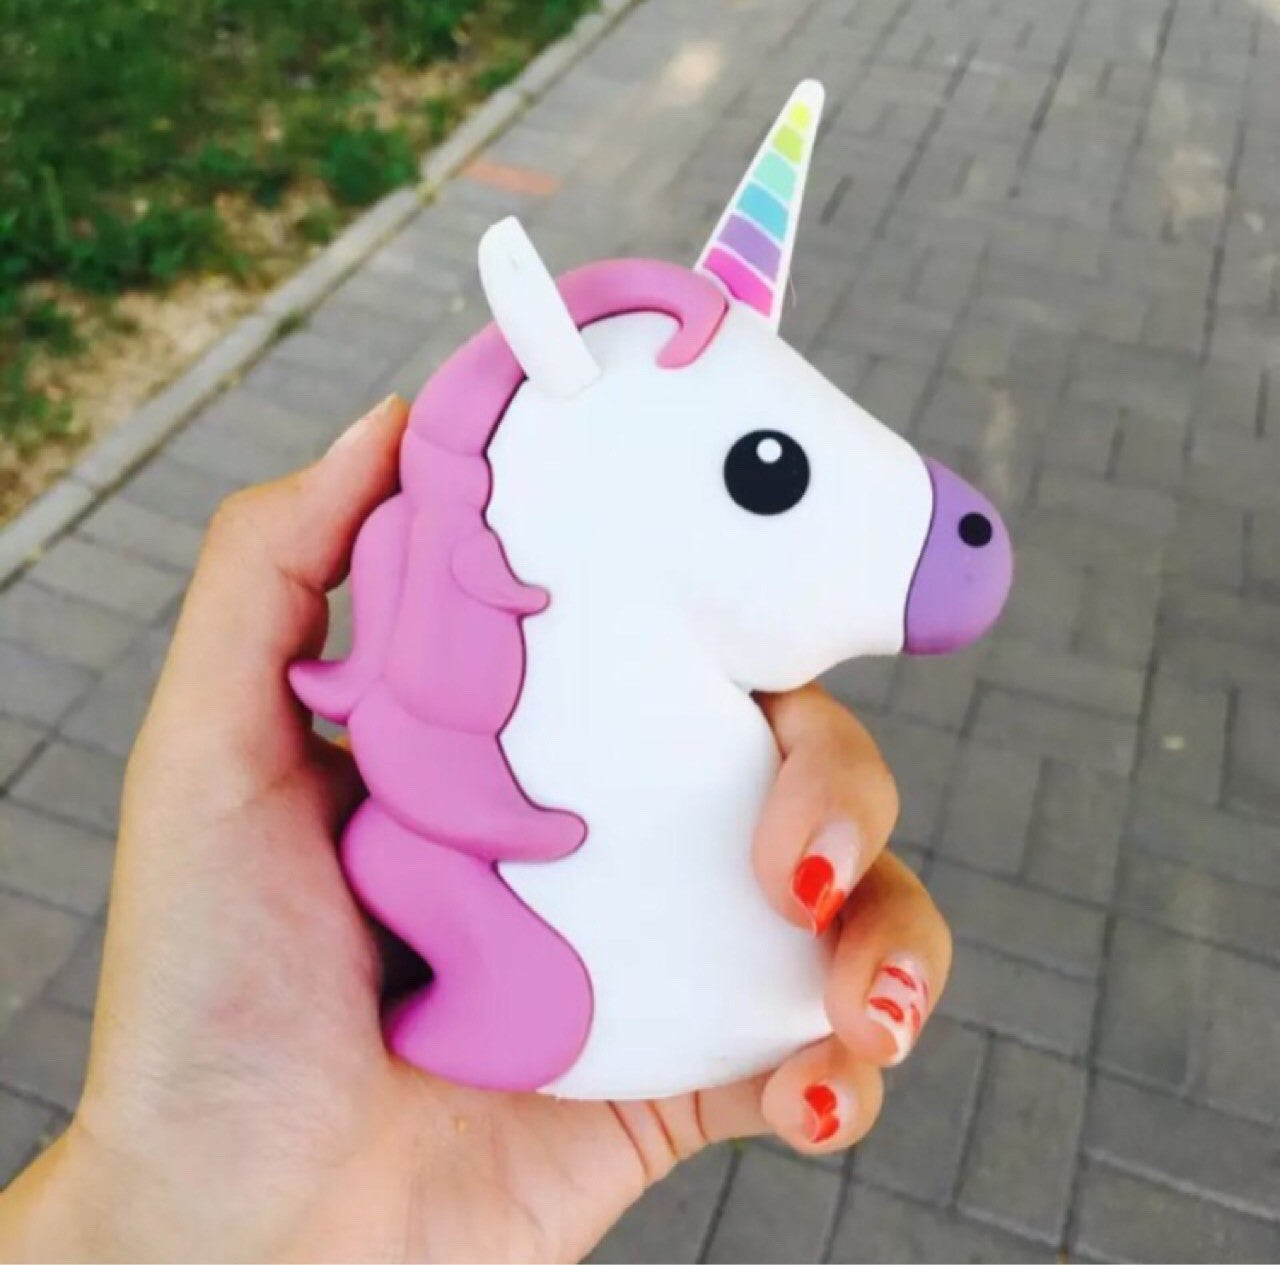 Emoji Unicorn Power-bank Charger - StyleSector 5a0fce0bd